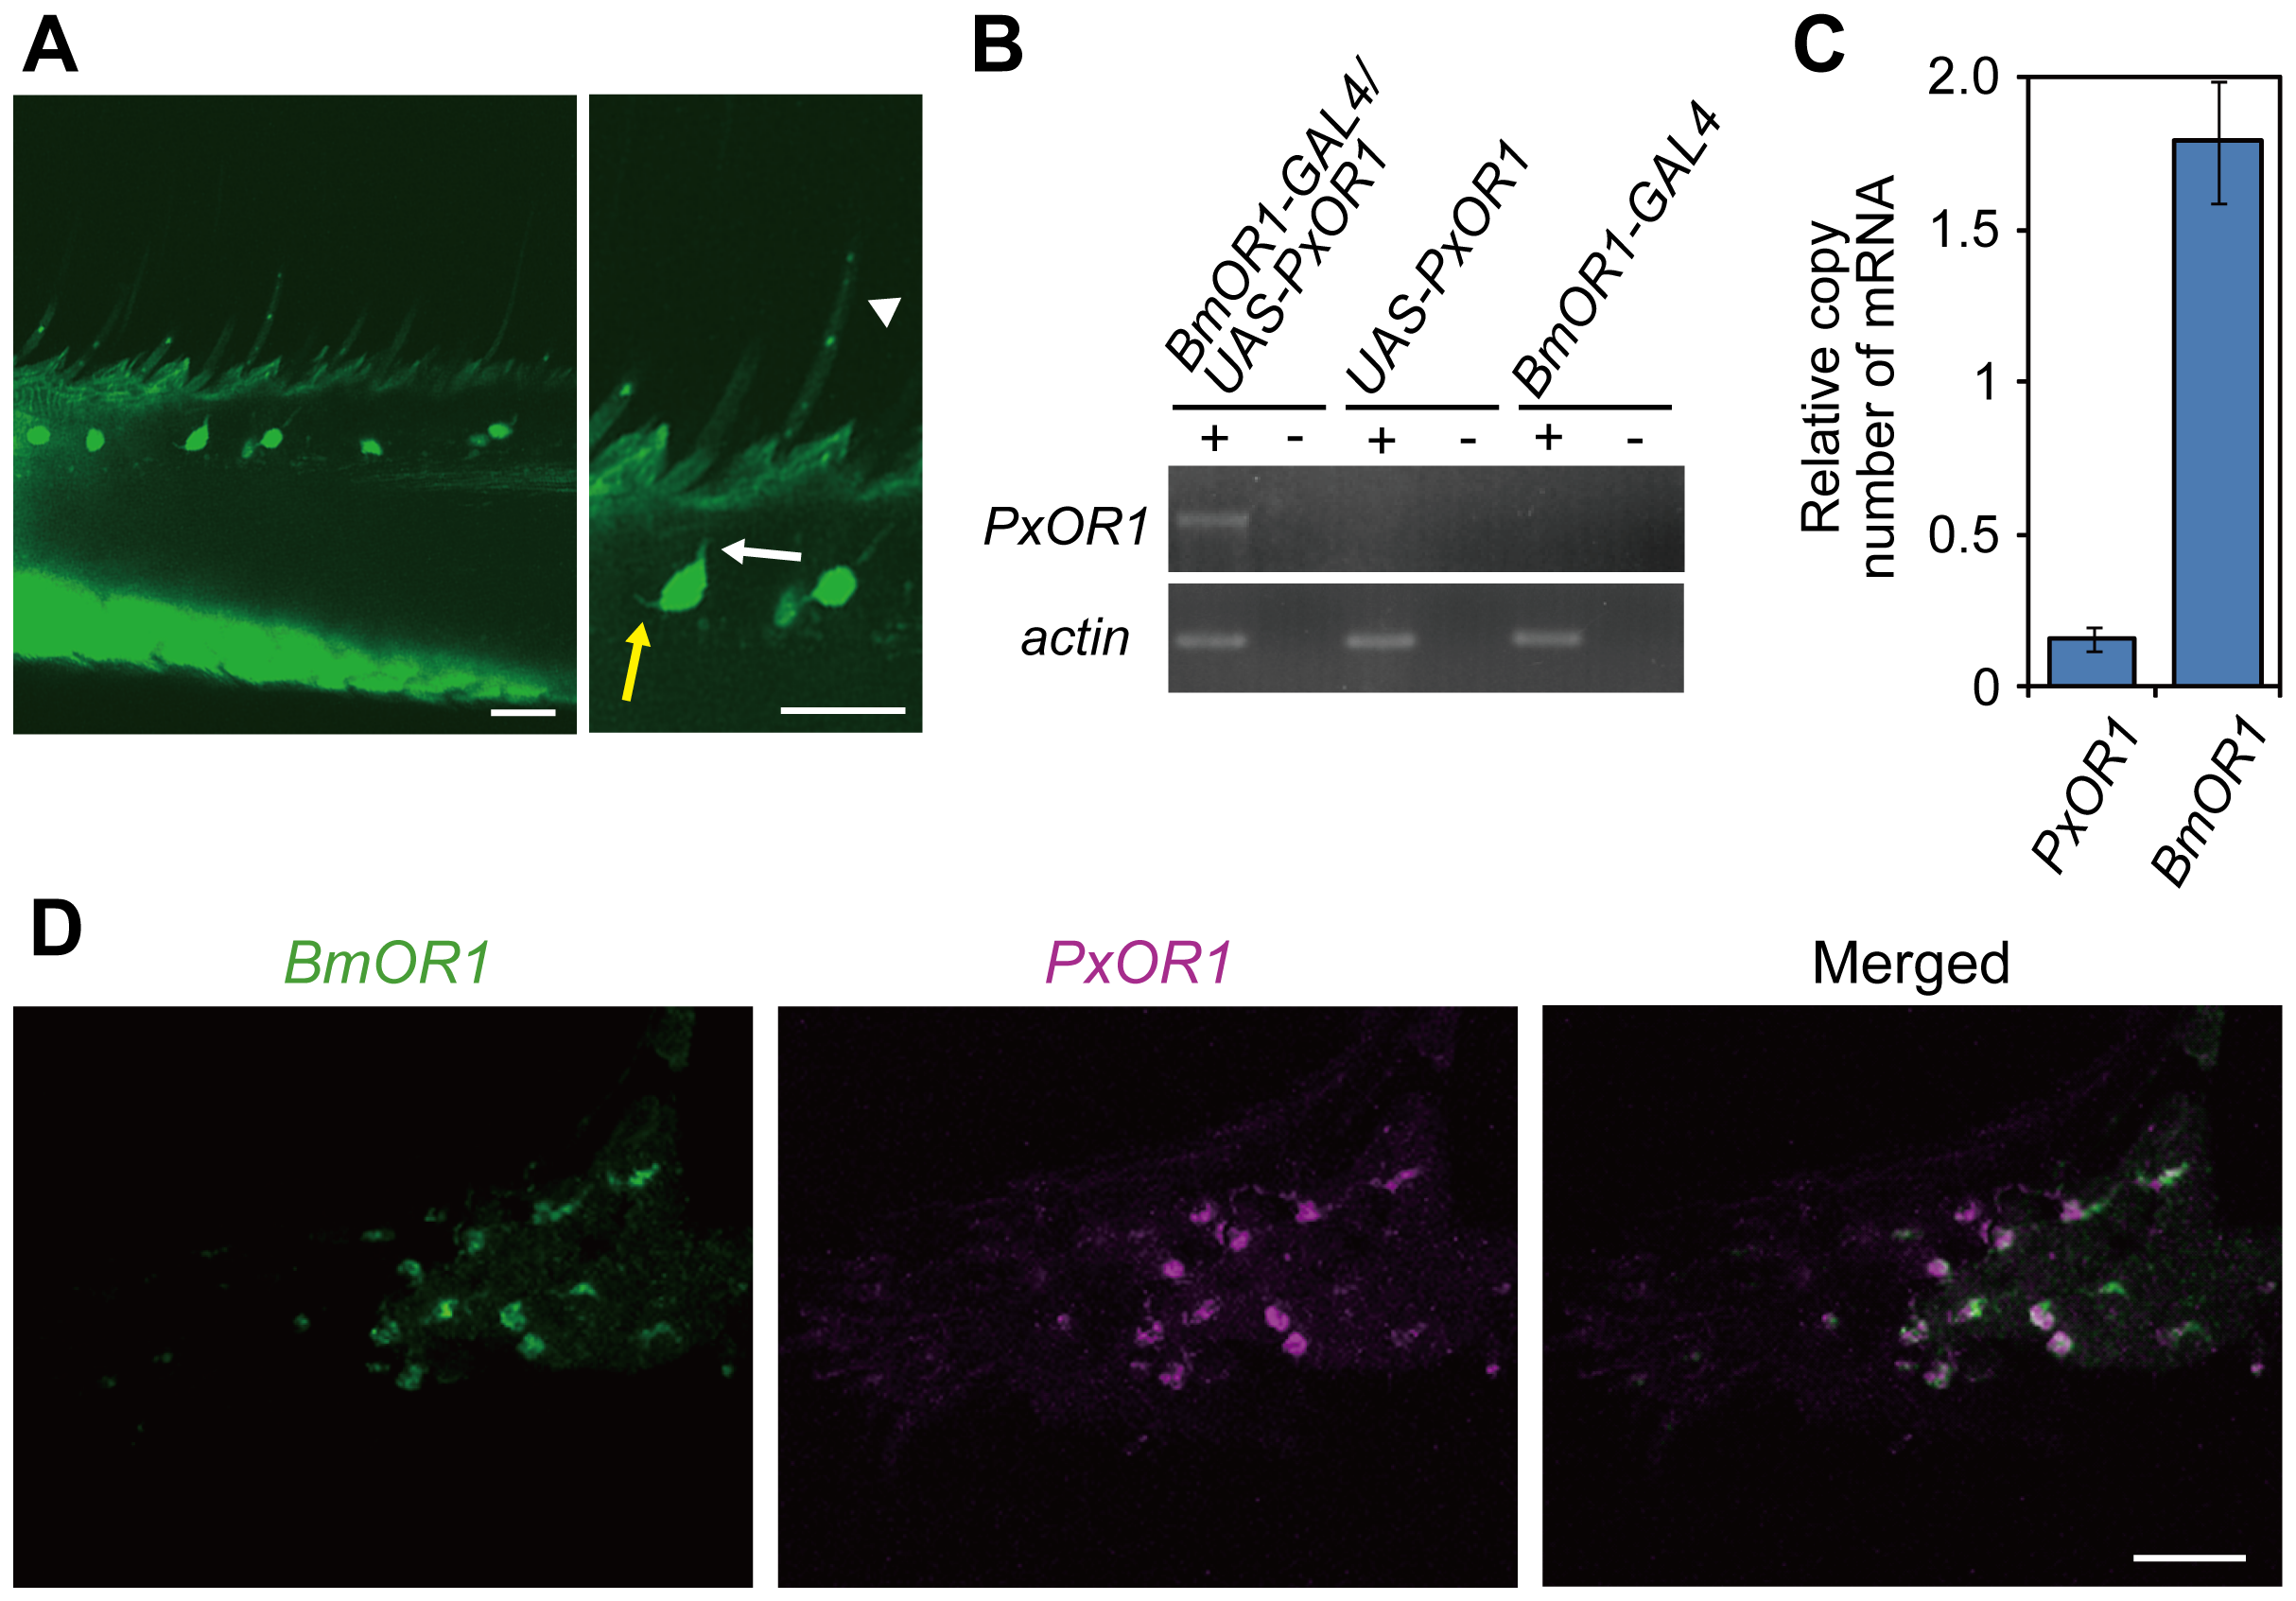 Transgenic silkmoths expressing PxOR1 in bombykol receptor neurons.